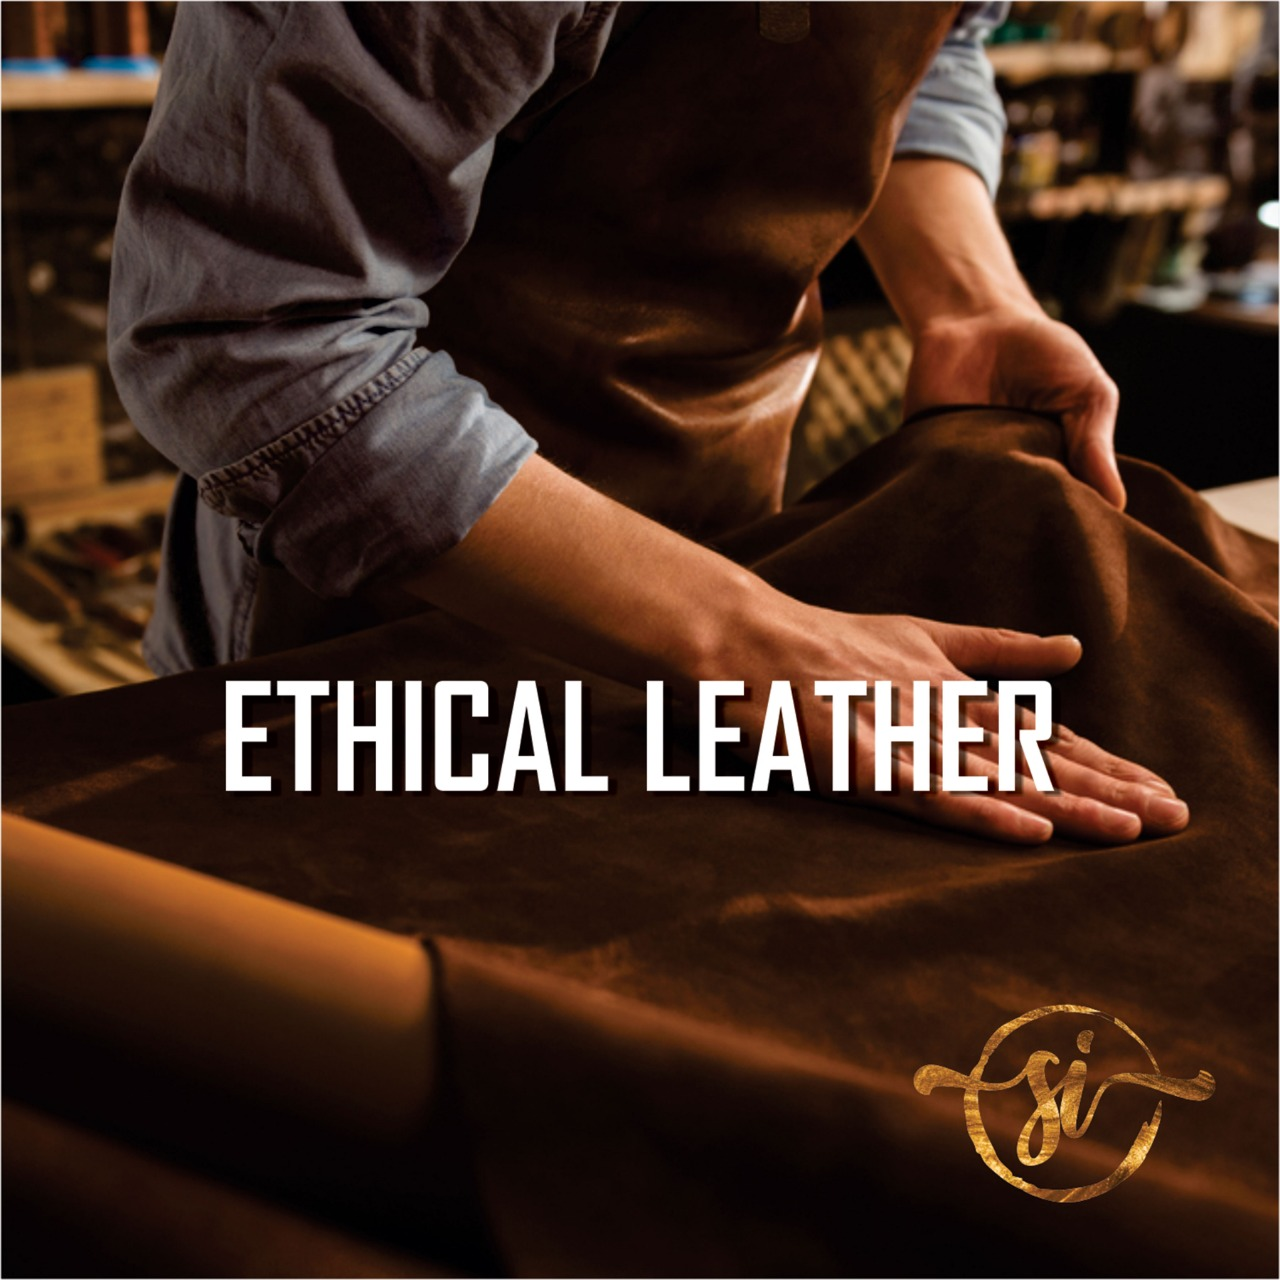 Buy Ethical Leather